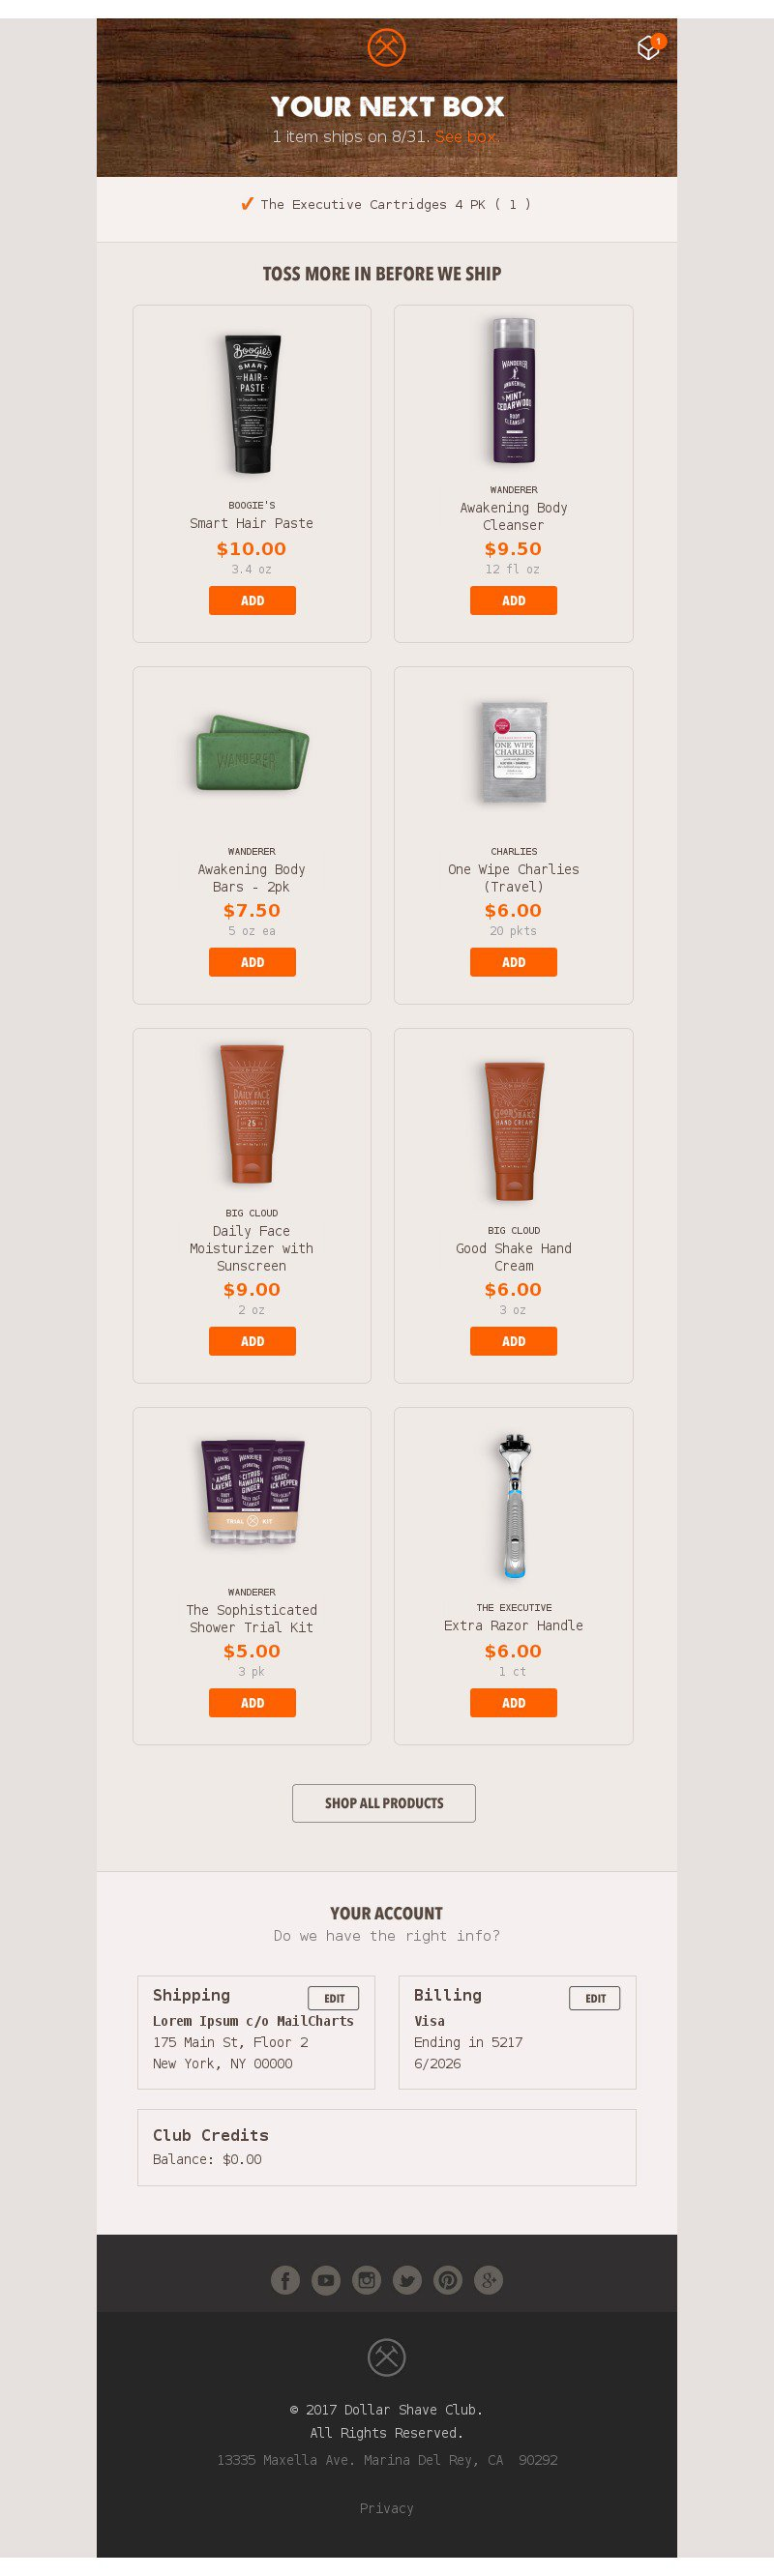 cross sell upsell email example from dollar shave club